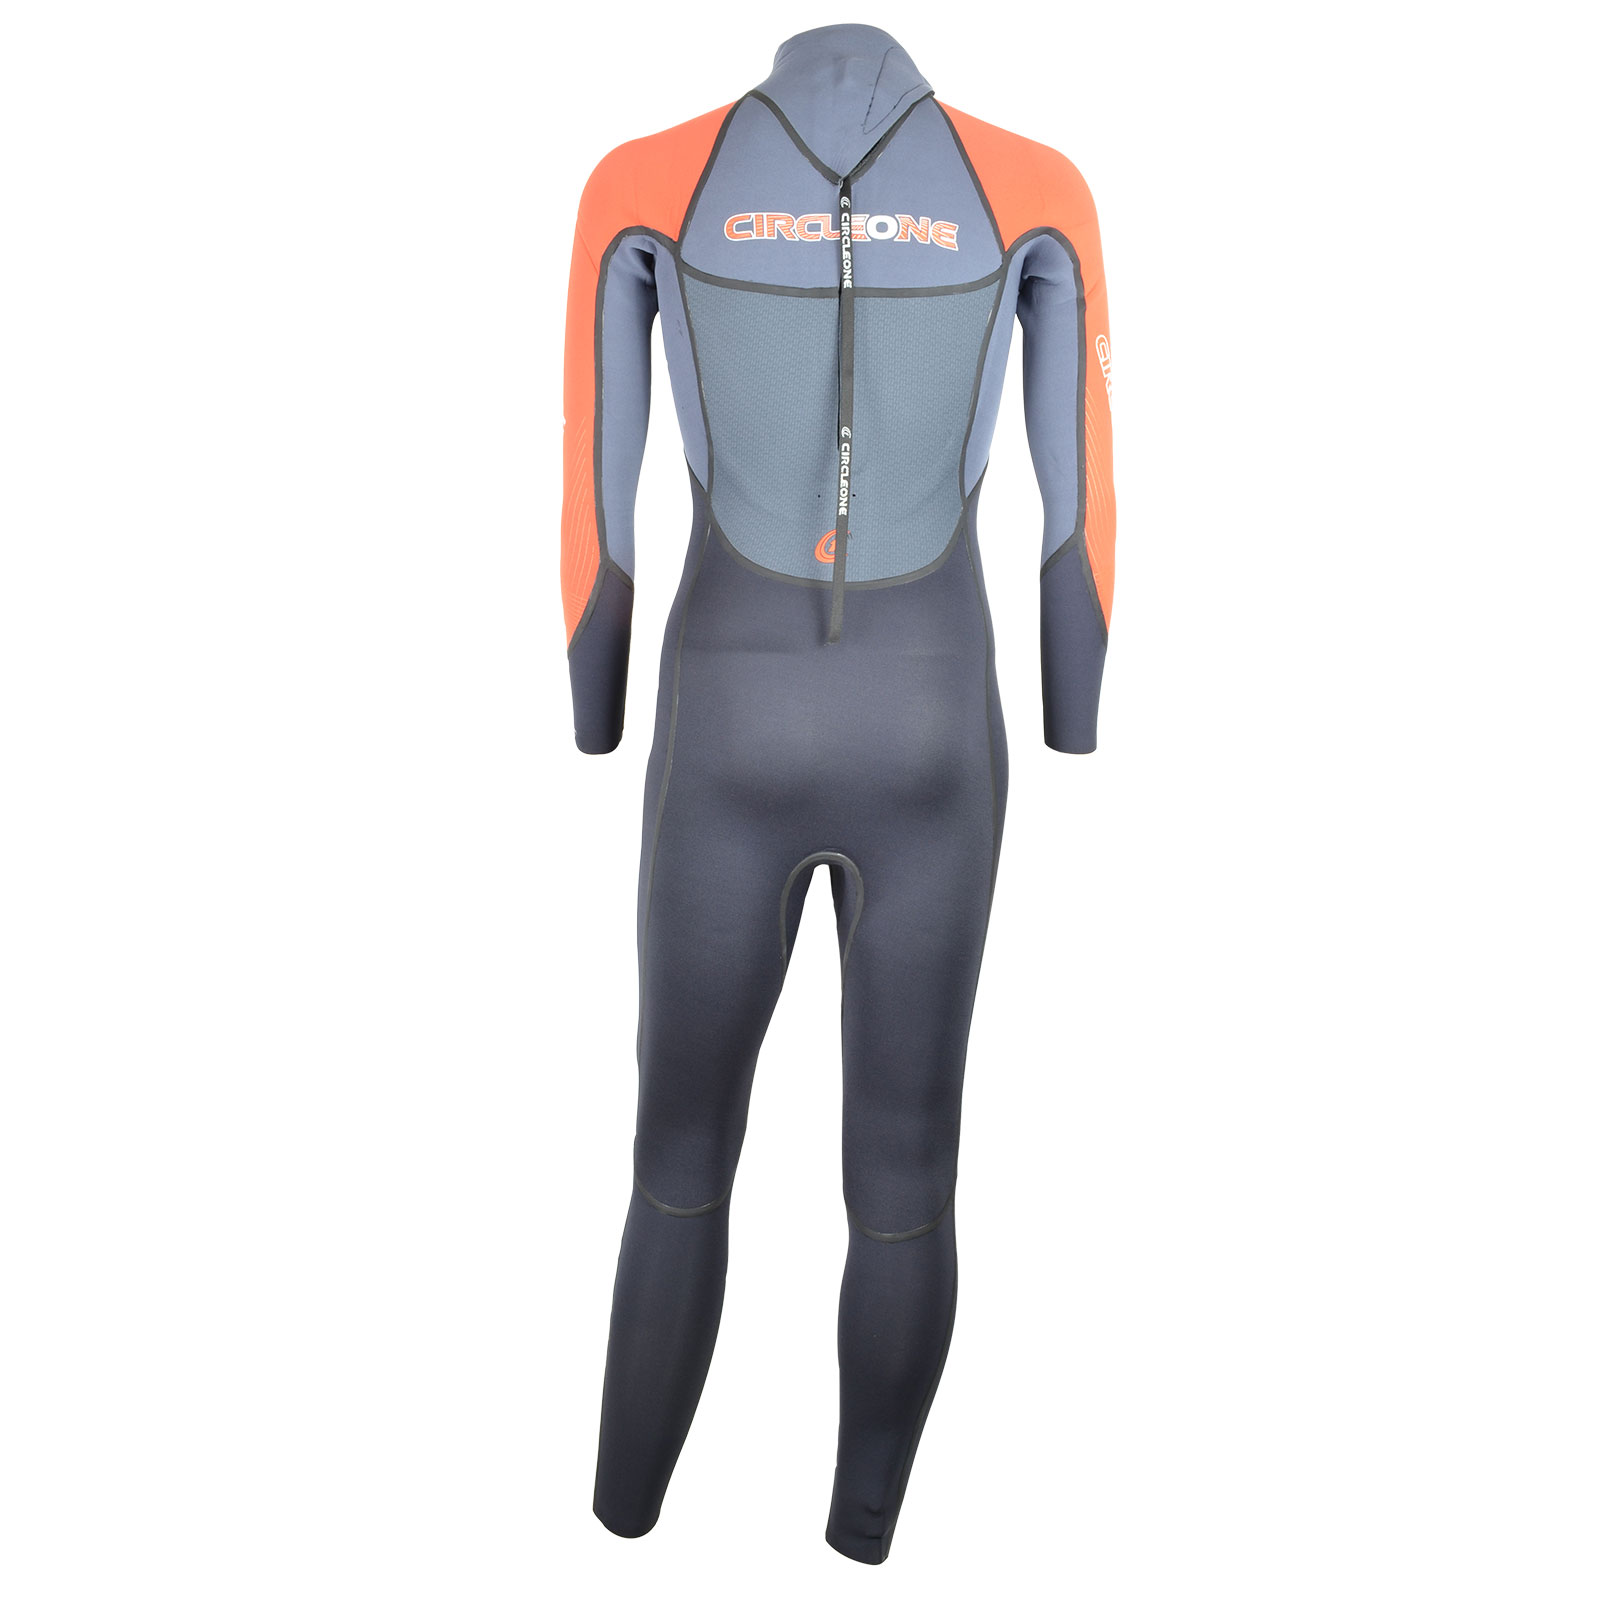 Icon Mens Winter Wetsuit Built For The Toughest